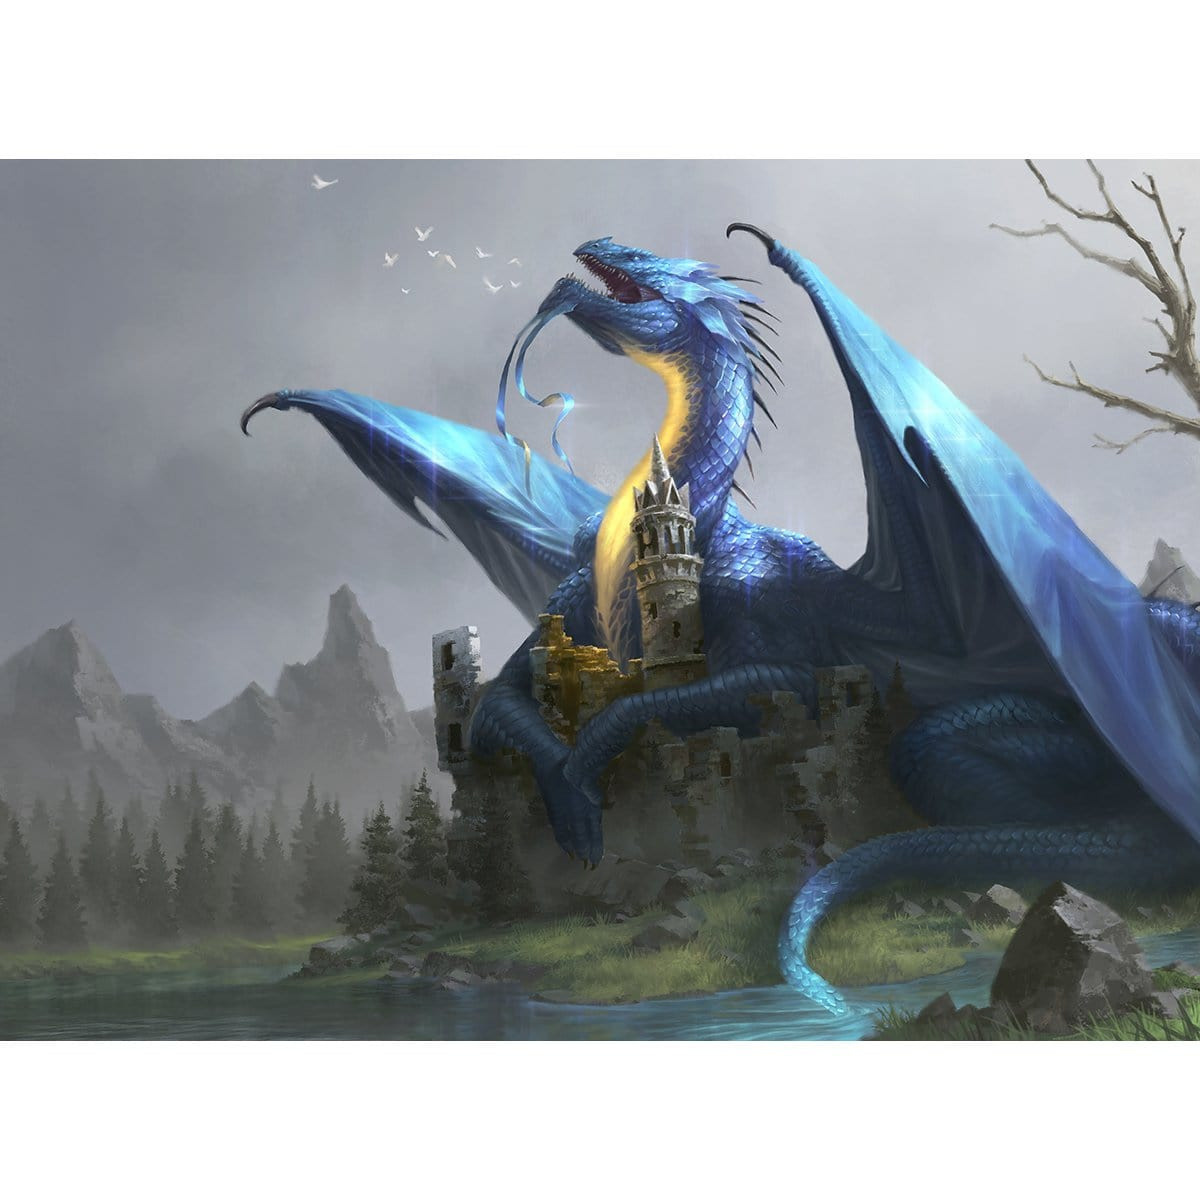 Shimmer Dragon Print - Print - Original Magic Art - Accessories for Magic the Gathering and other card games